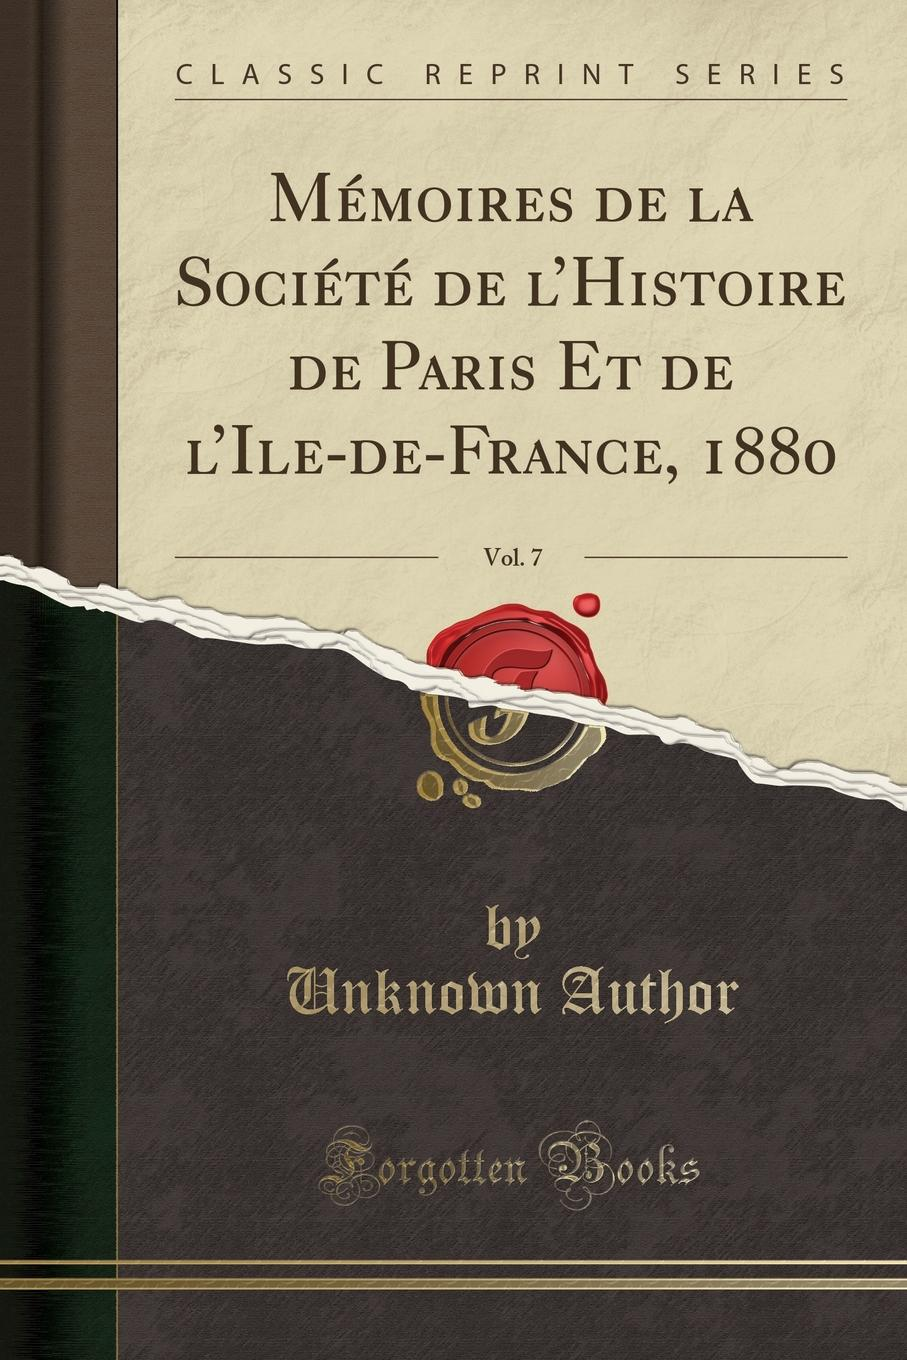 Unknown Author Memoires de la Societe de l.Histoire de Paris Et de l.Ile-de-France, 1880, Vol. 7 (Classic Reprint)